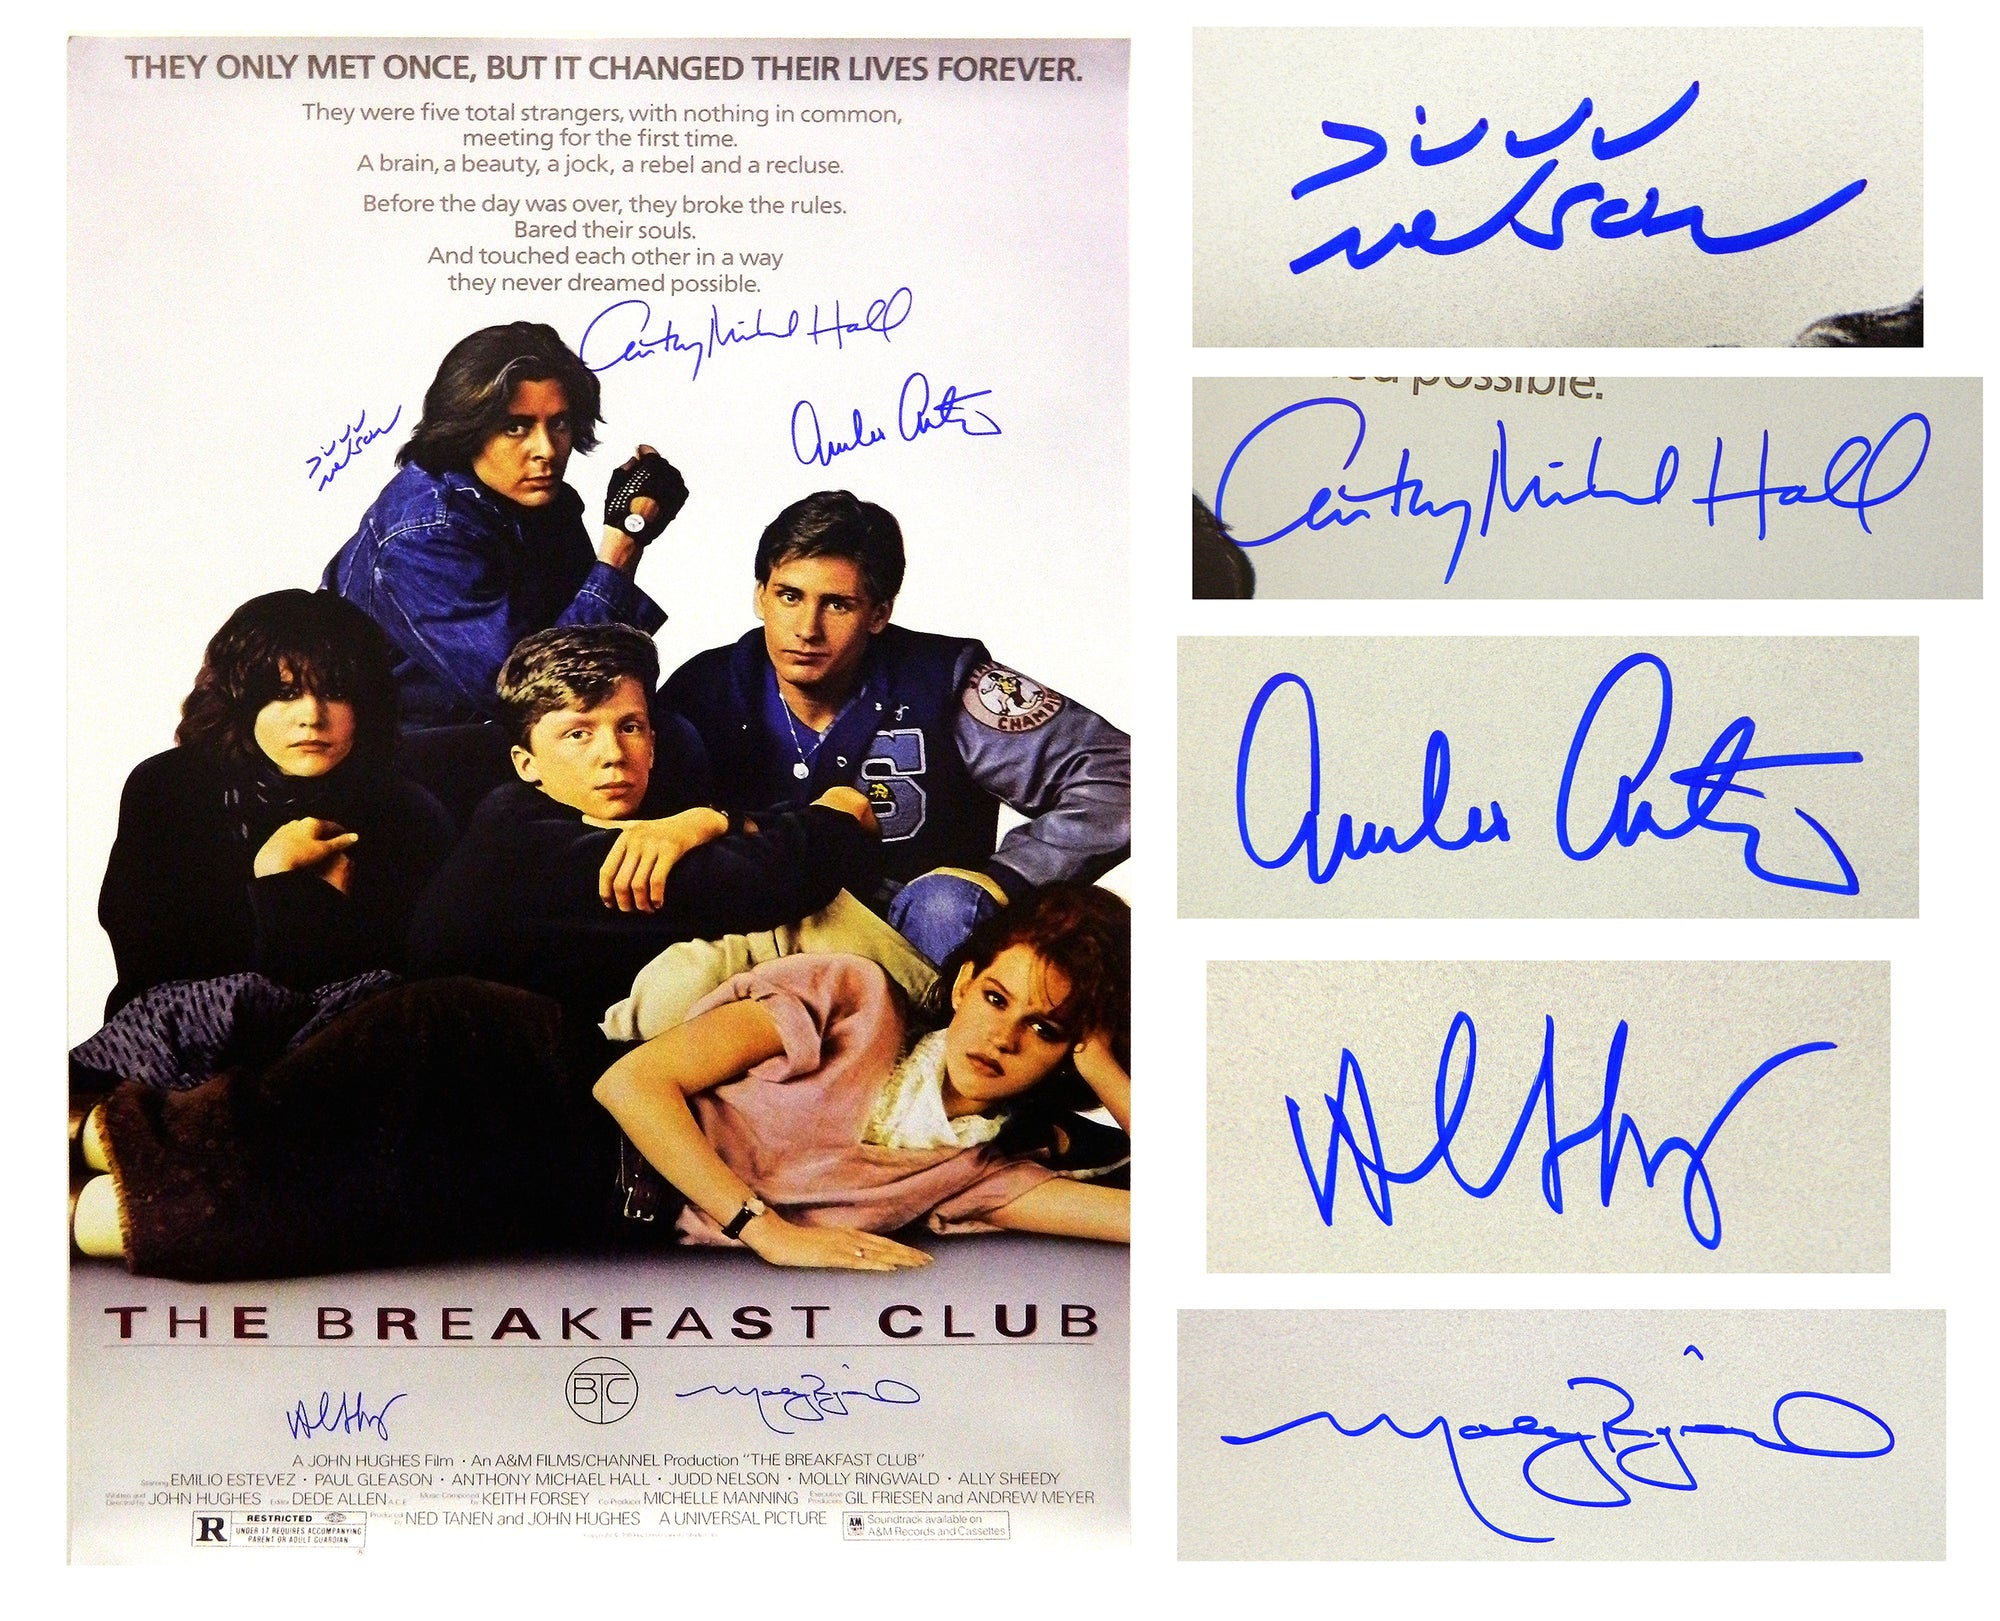 The Breakfast Club Cast Signed The Breakfast Club 24x36 Movie Poster (Estevez, Ringwald, Nelson, Hall, Sheedy) PSM-Powers Sports Memorabilia